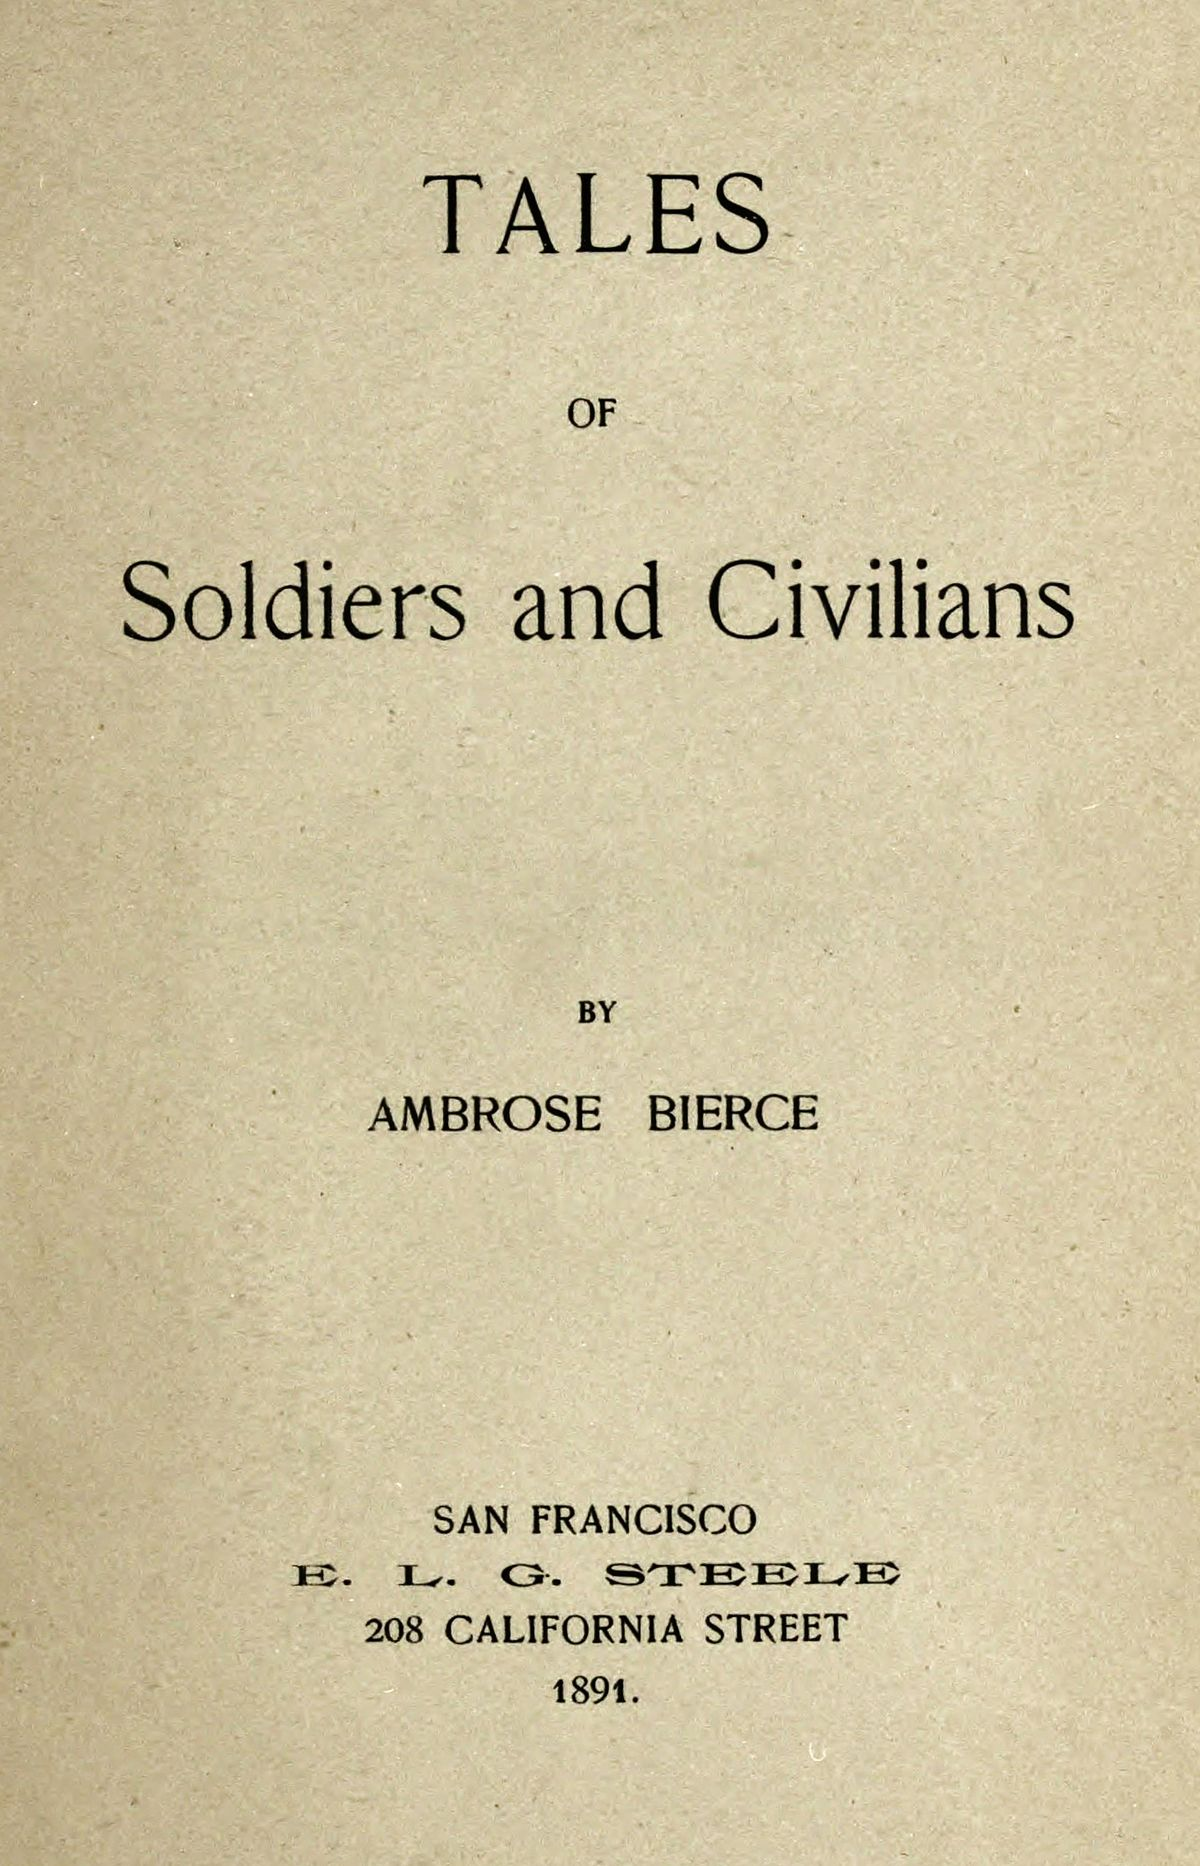 essays on ambrose bierce Works by ambrose bierce: during his career as a journalist, poet, and author of fiction and nonfiction, ambrose bierce published more than four million words.